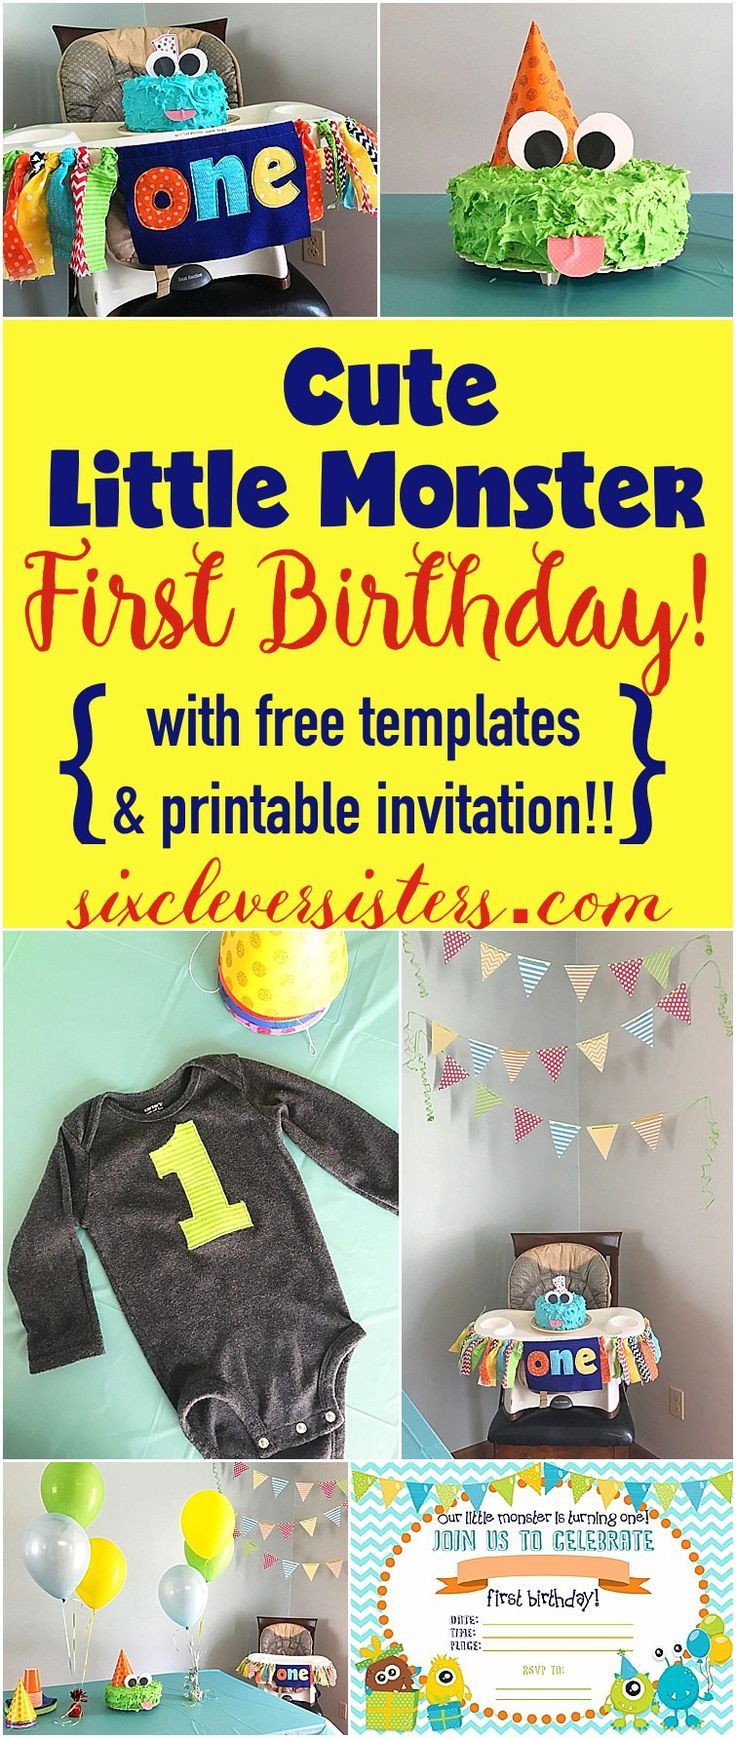 Cute Little Monster FIRST BIRTHDAY {with free templates!} | First Birthday Party | Monster Party | Cake Ideas | Free Party Printables | One Year Old | Party Decorations | Monster Party Invitations | Check out ALL the #partyideas at Six Clever Sisters blog!